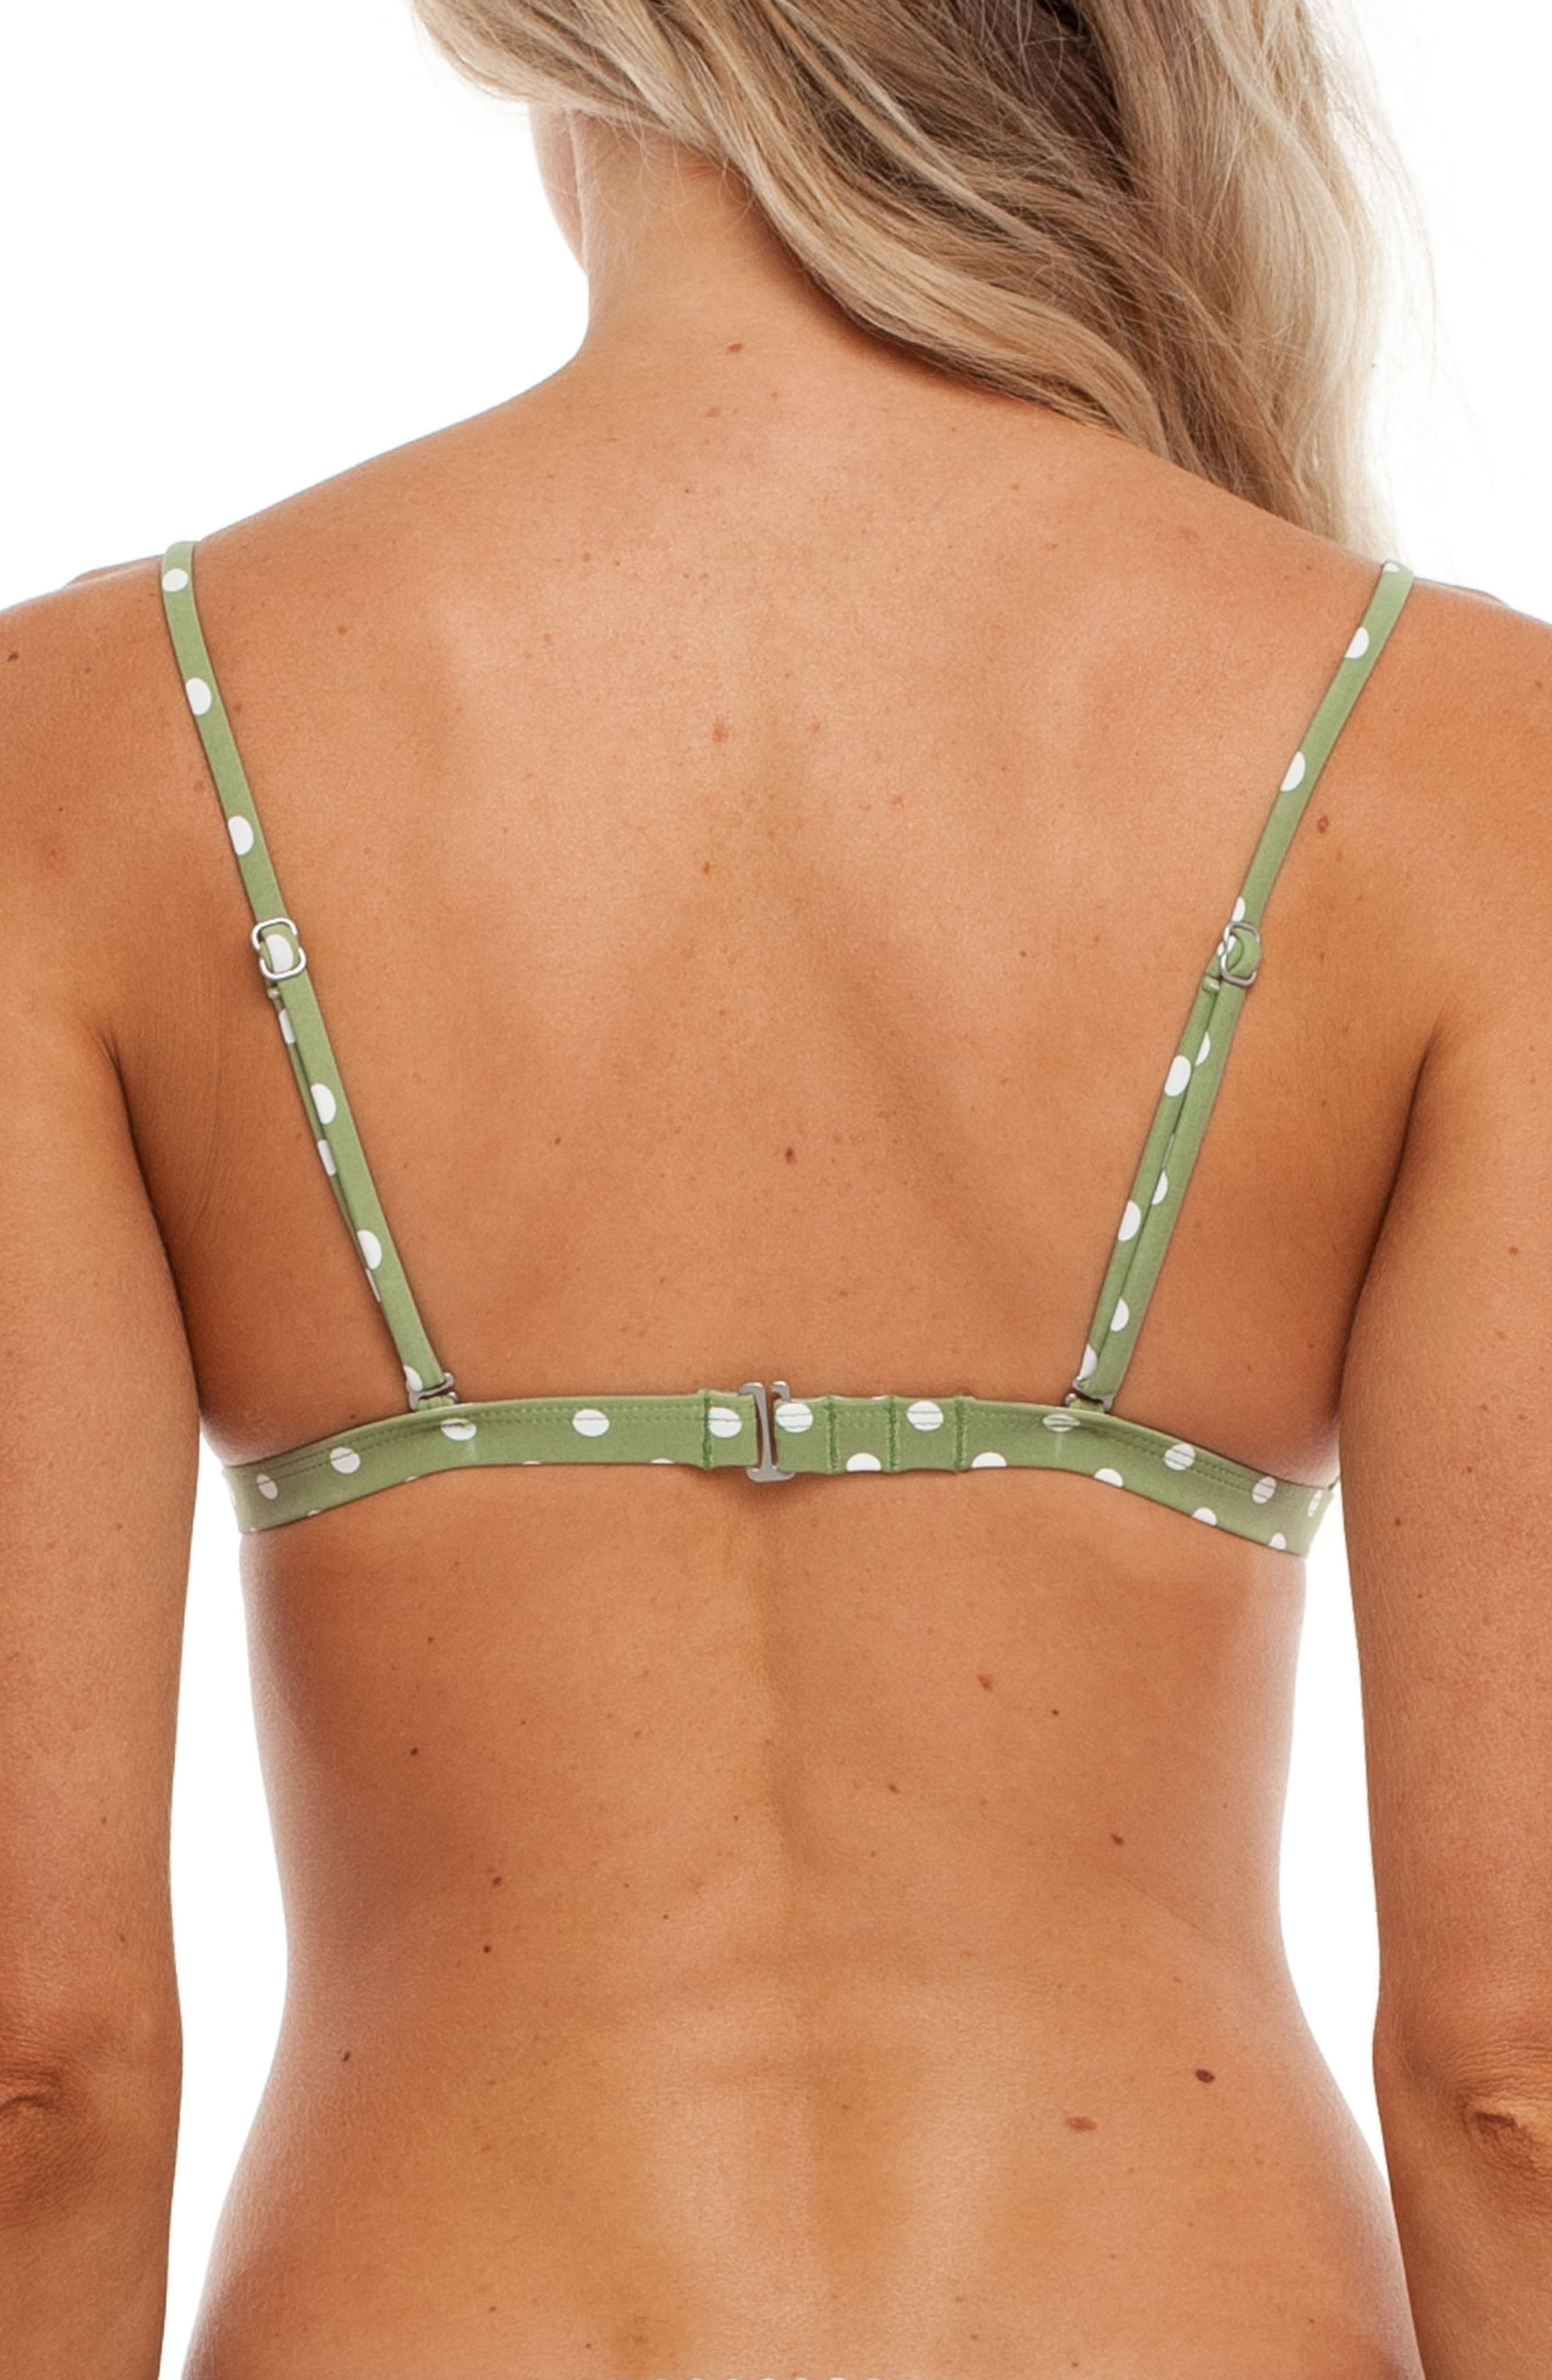 Acapulco Bralette Bikini Top,                             Alternate thumbnail 2, color,